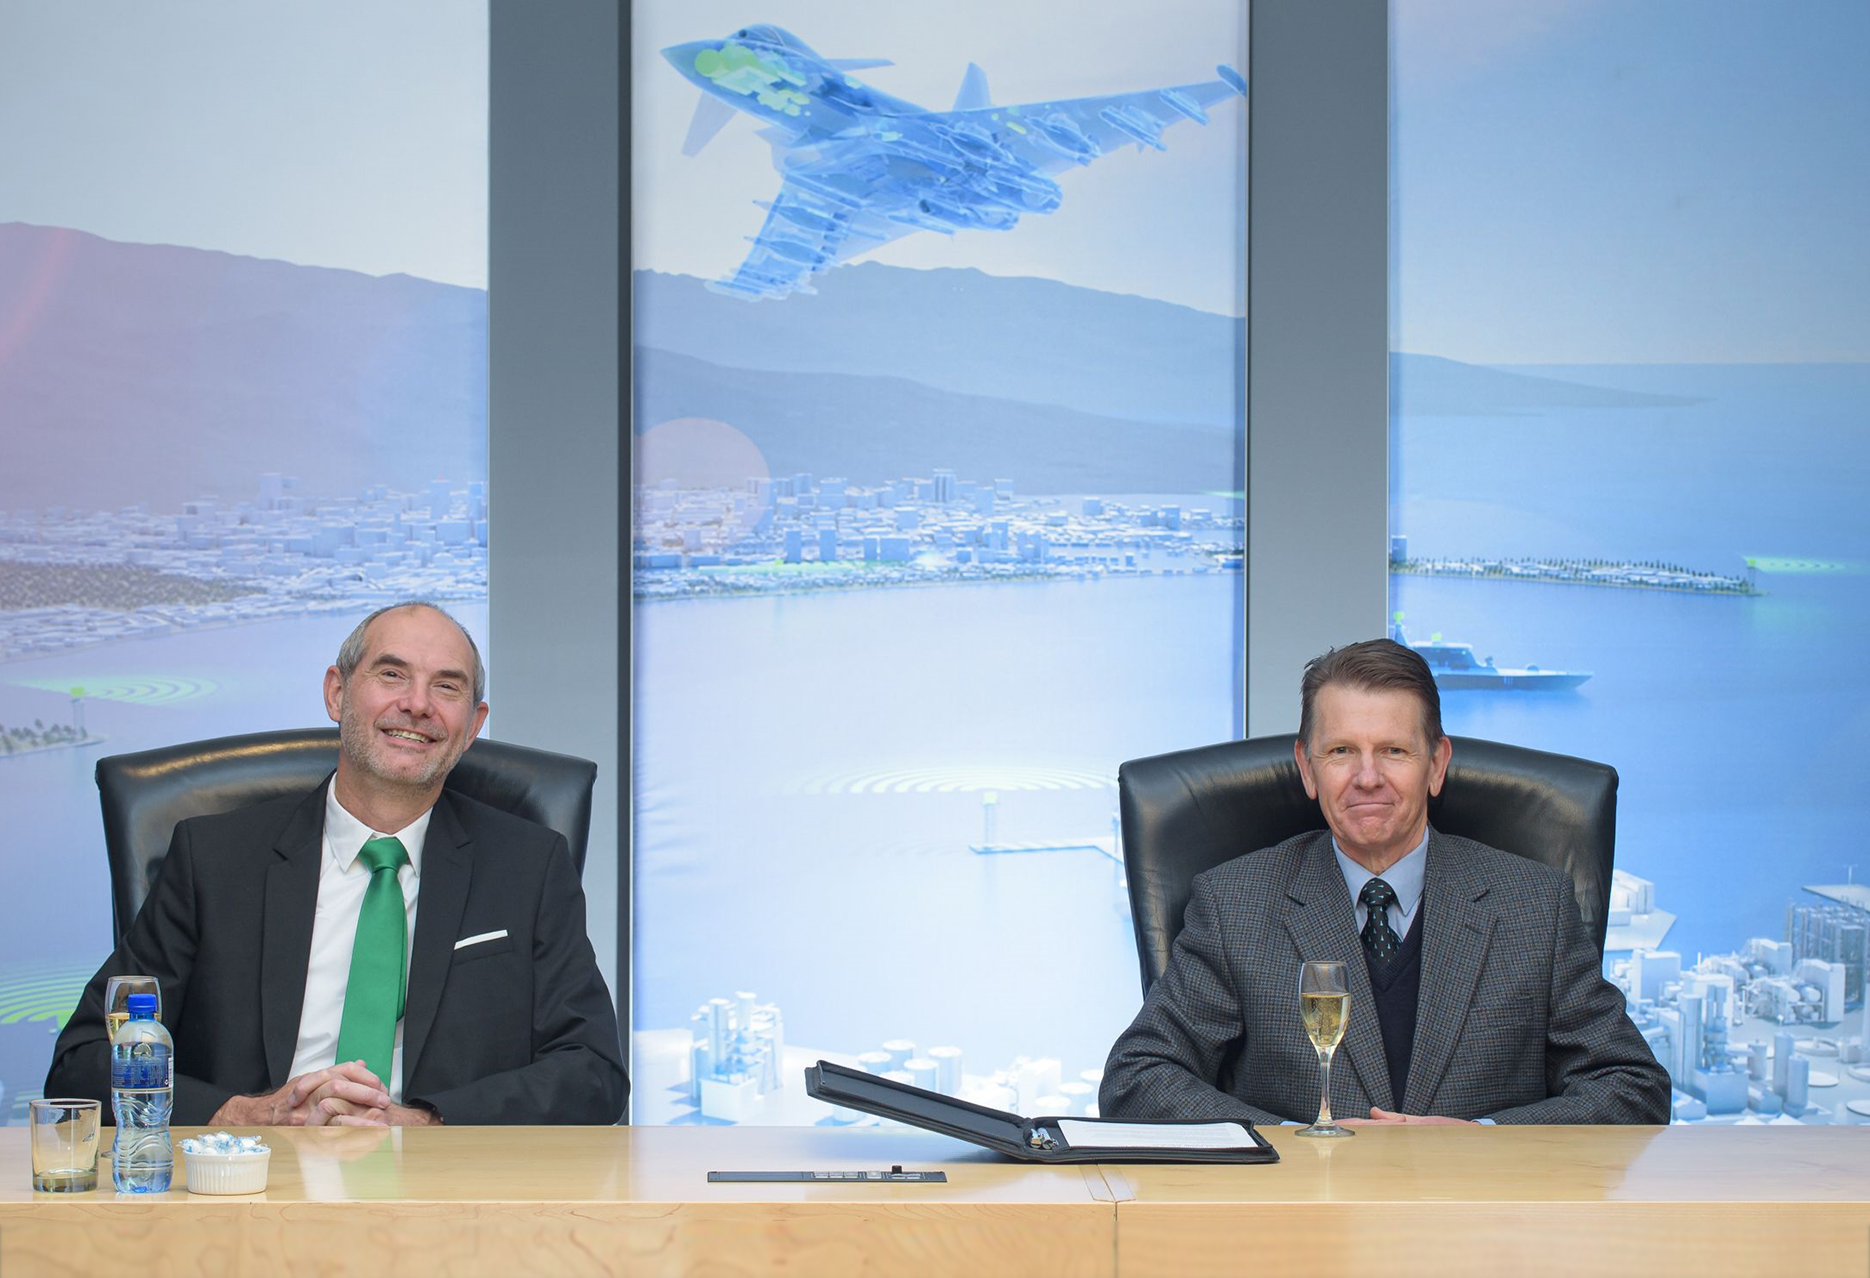 HENSOLDT SOUTH AFRICA ACQUIRES TELLUMAT'S AIR TRAFFIC MANAGEMENT AND DEFENCE BUSINESS UNITS